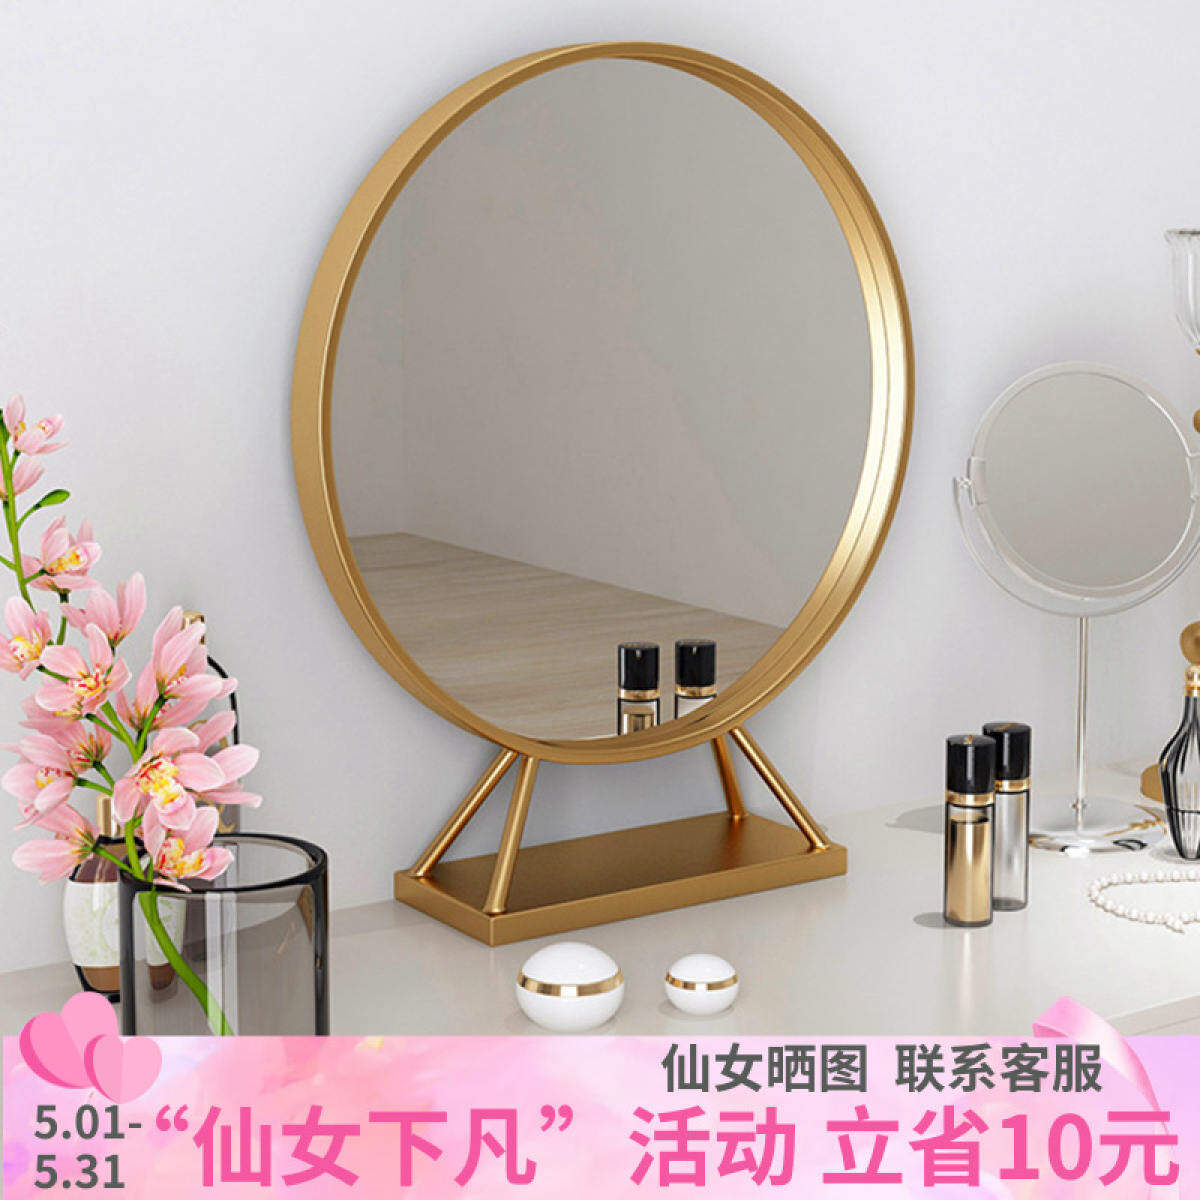 I Yue Desktop Makeup Mirror With Lamp Led Desktop Web Celebrity Dormitory Bedroom Mirror Girls Receive Frame Dresser Mirror Lazada